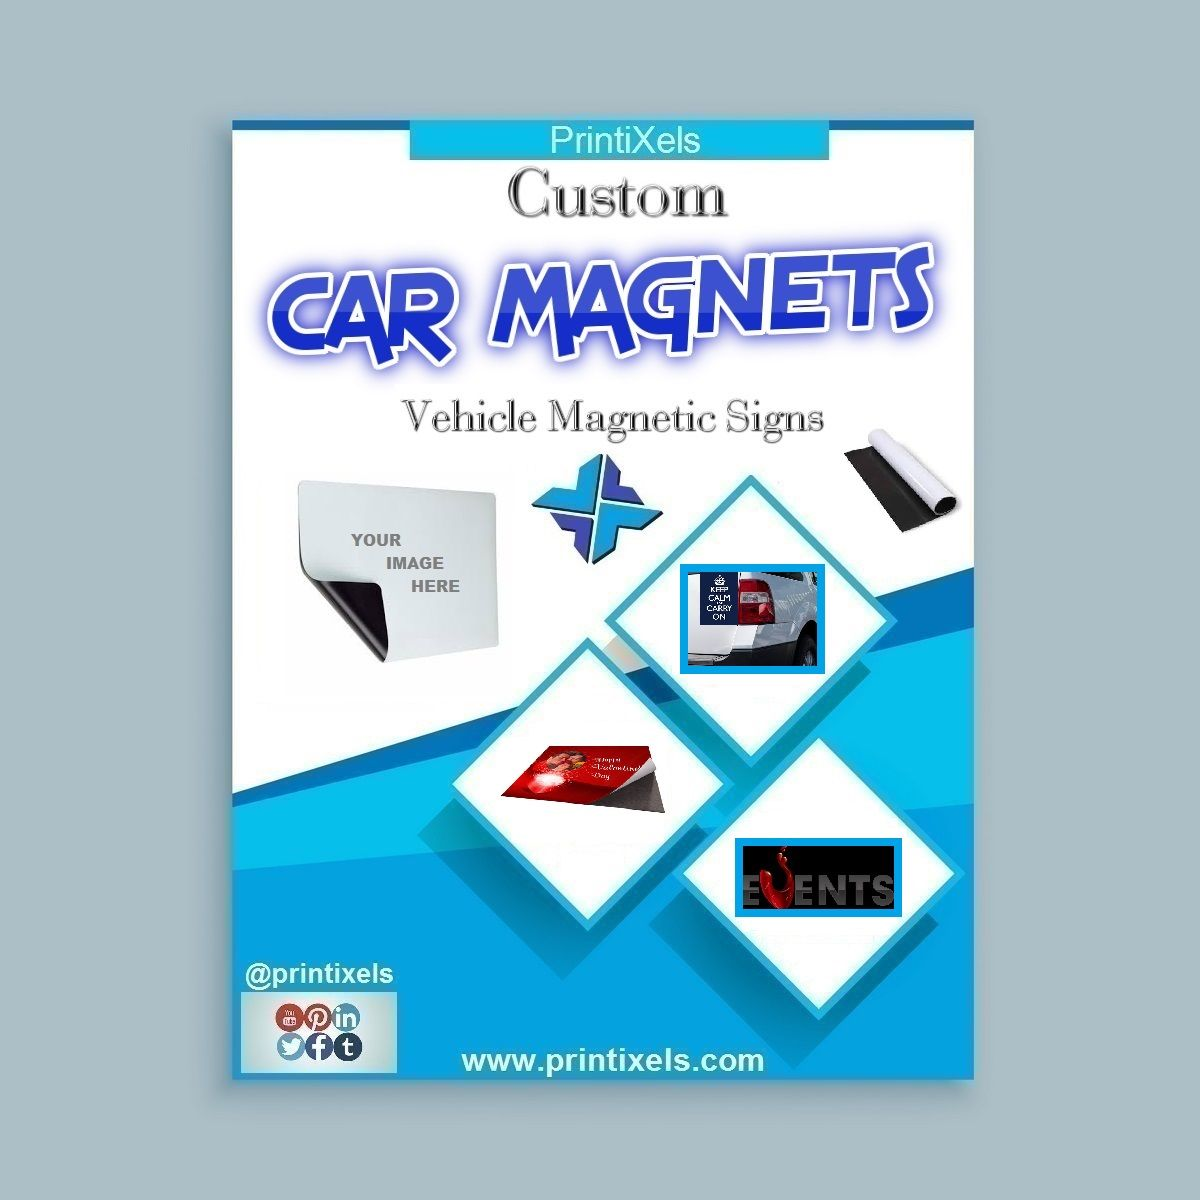 Custom Car Magnets Vehicle Magnetic Signs Signage Maker - Custom car magnet maker